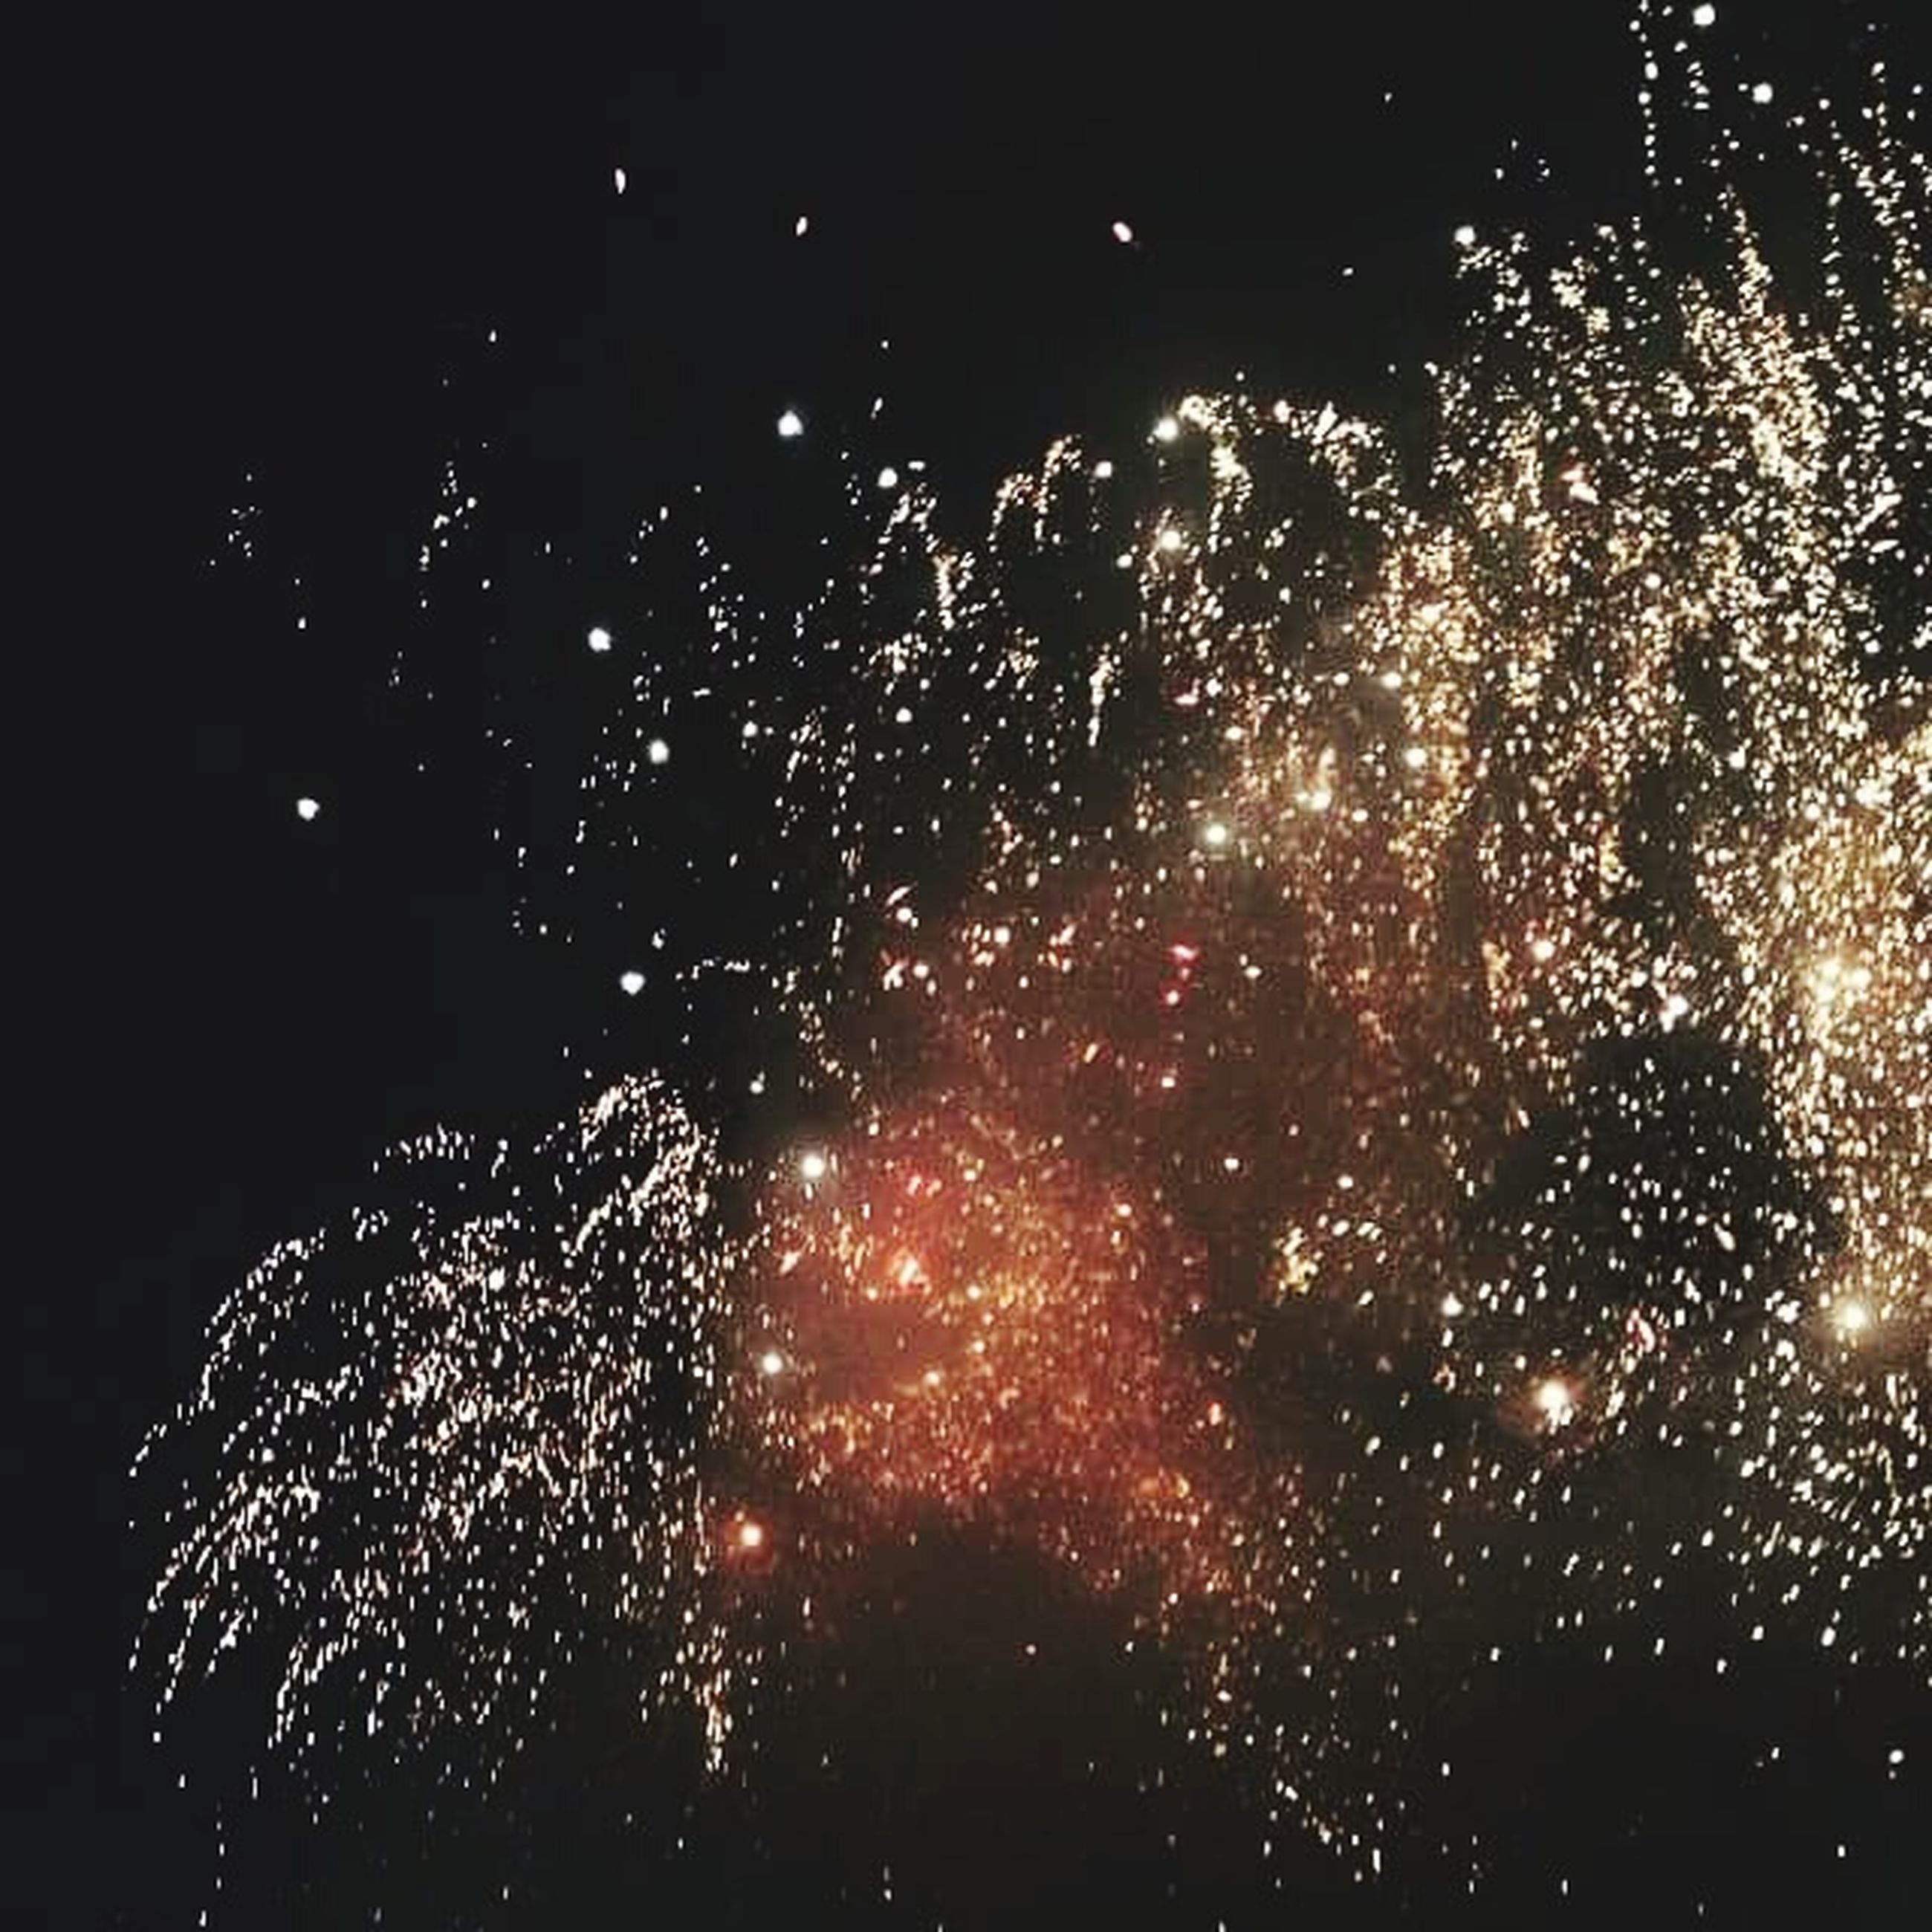 night, illuminated, celebration, firework display, glowing, low angle view, long exposure, motion, exploding, firework - man made object, sparks, firework, arts culture and entertainment, dark, light, lighting equipment, event, no people, sky, light - natural phenomenon